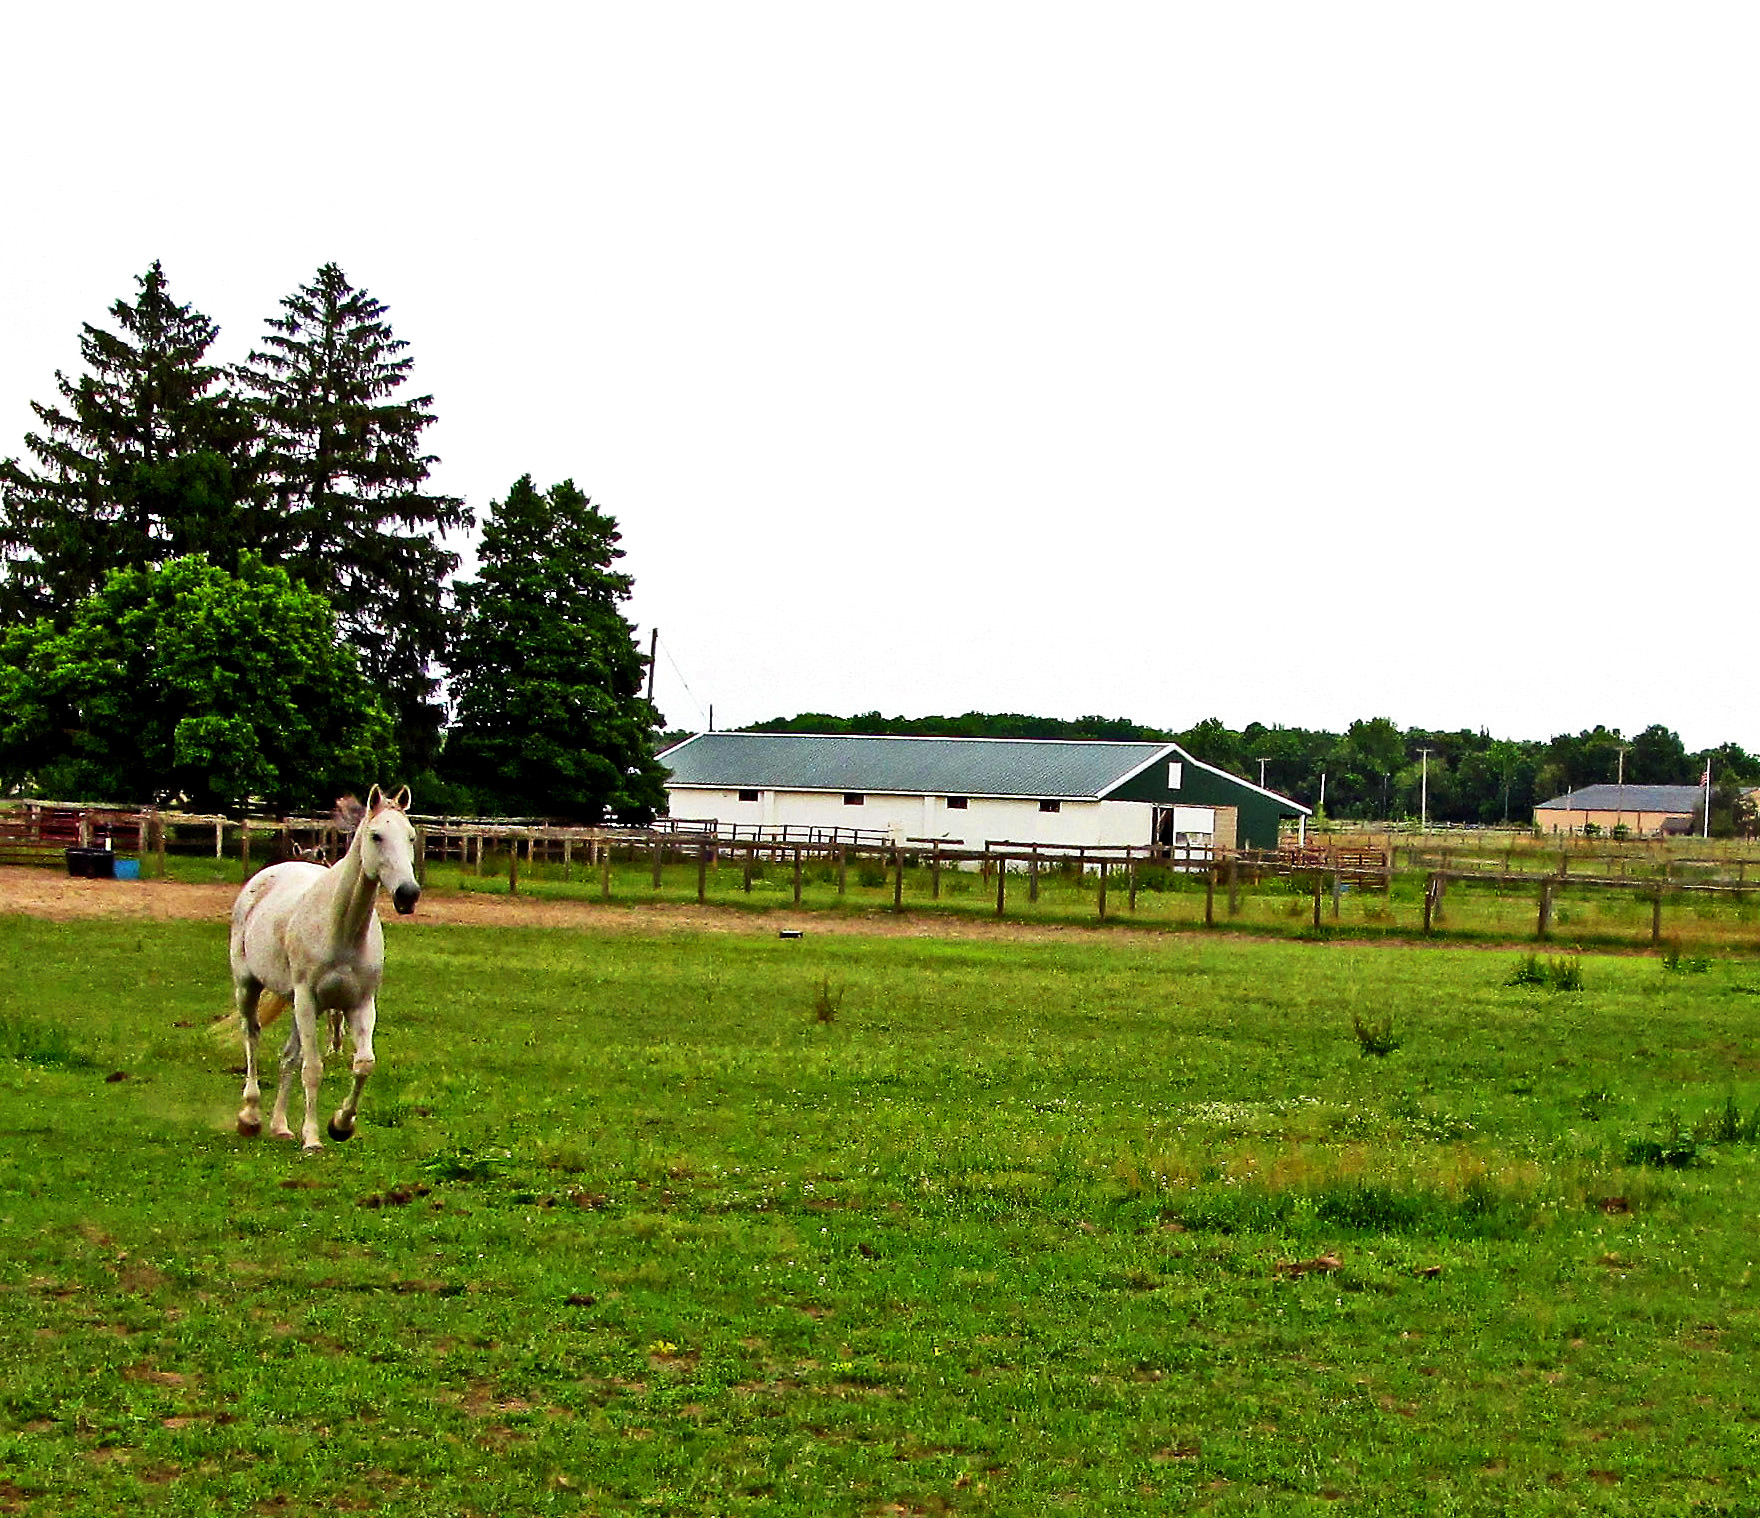 Trotting On The Farm